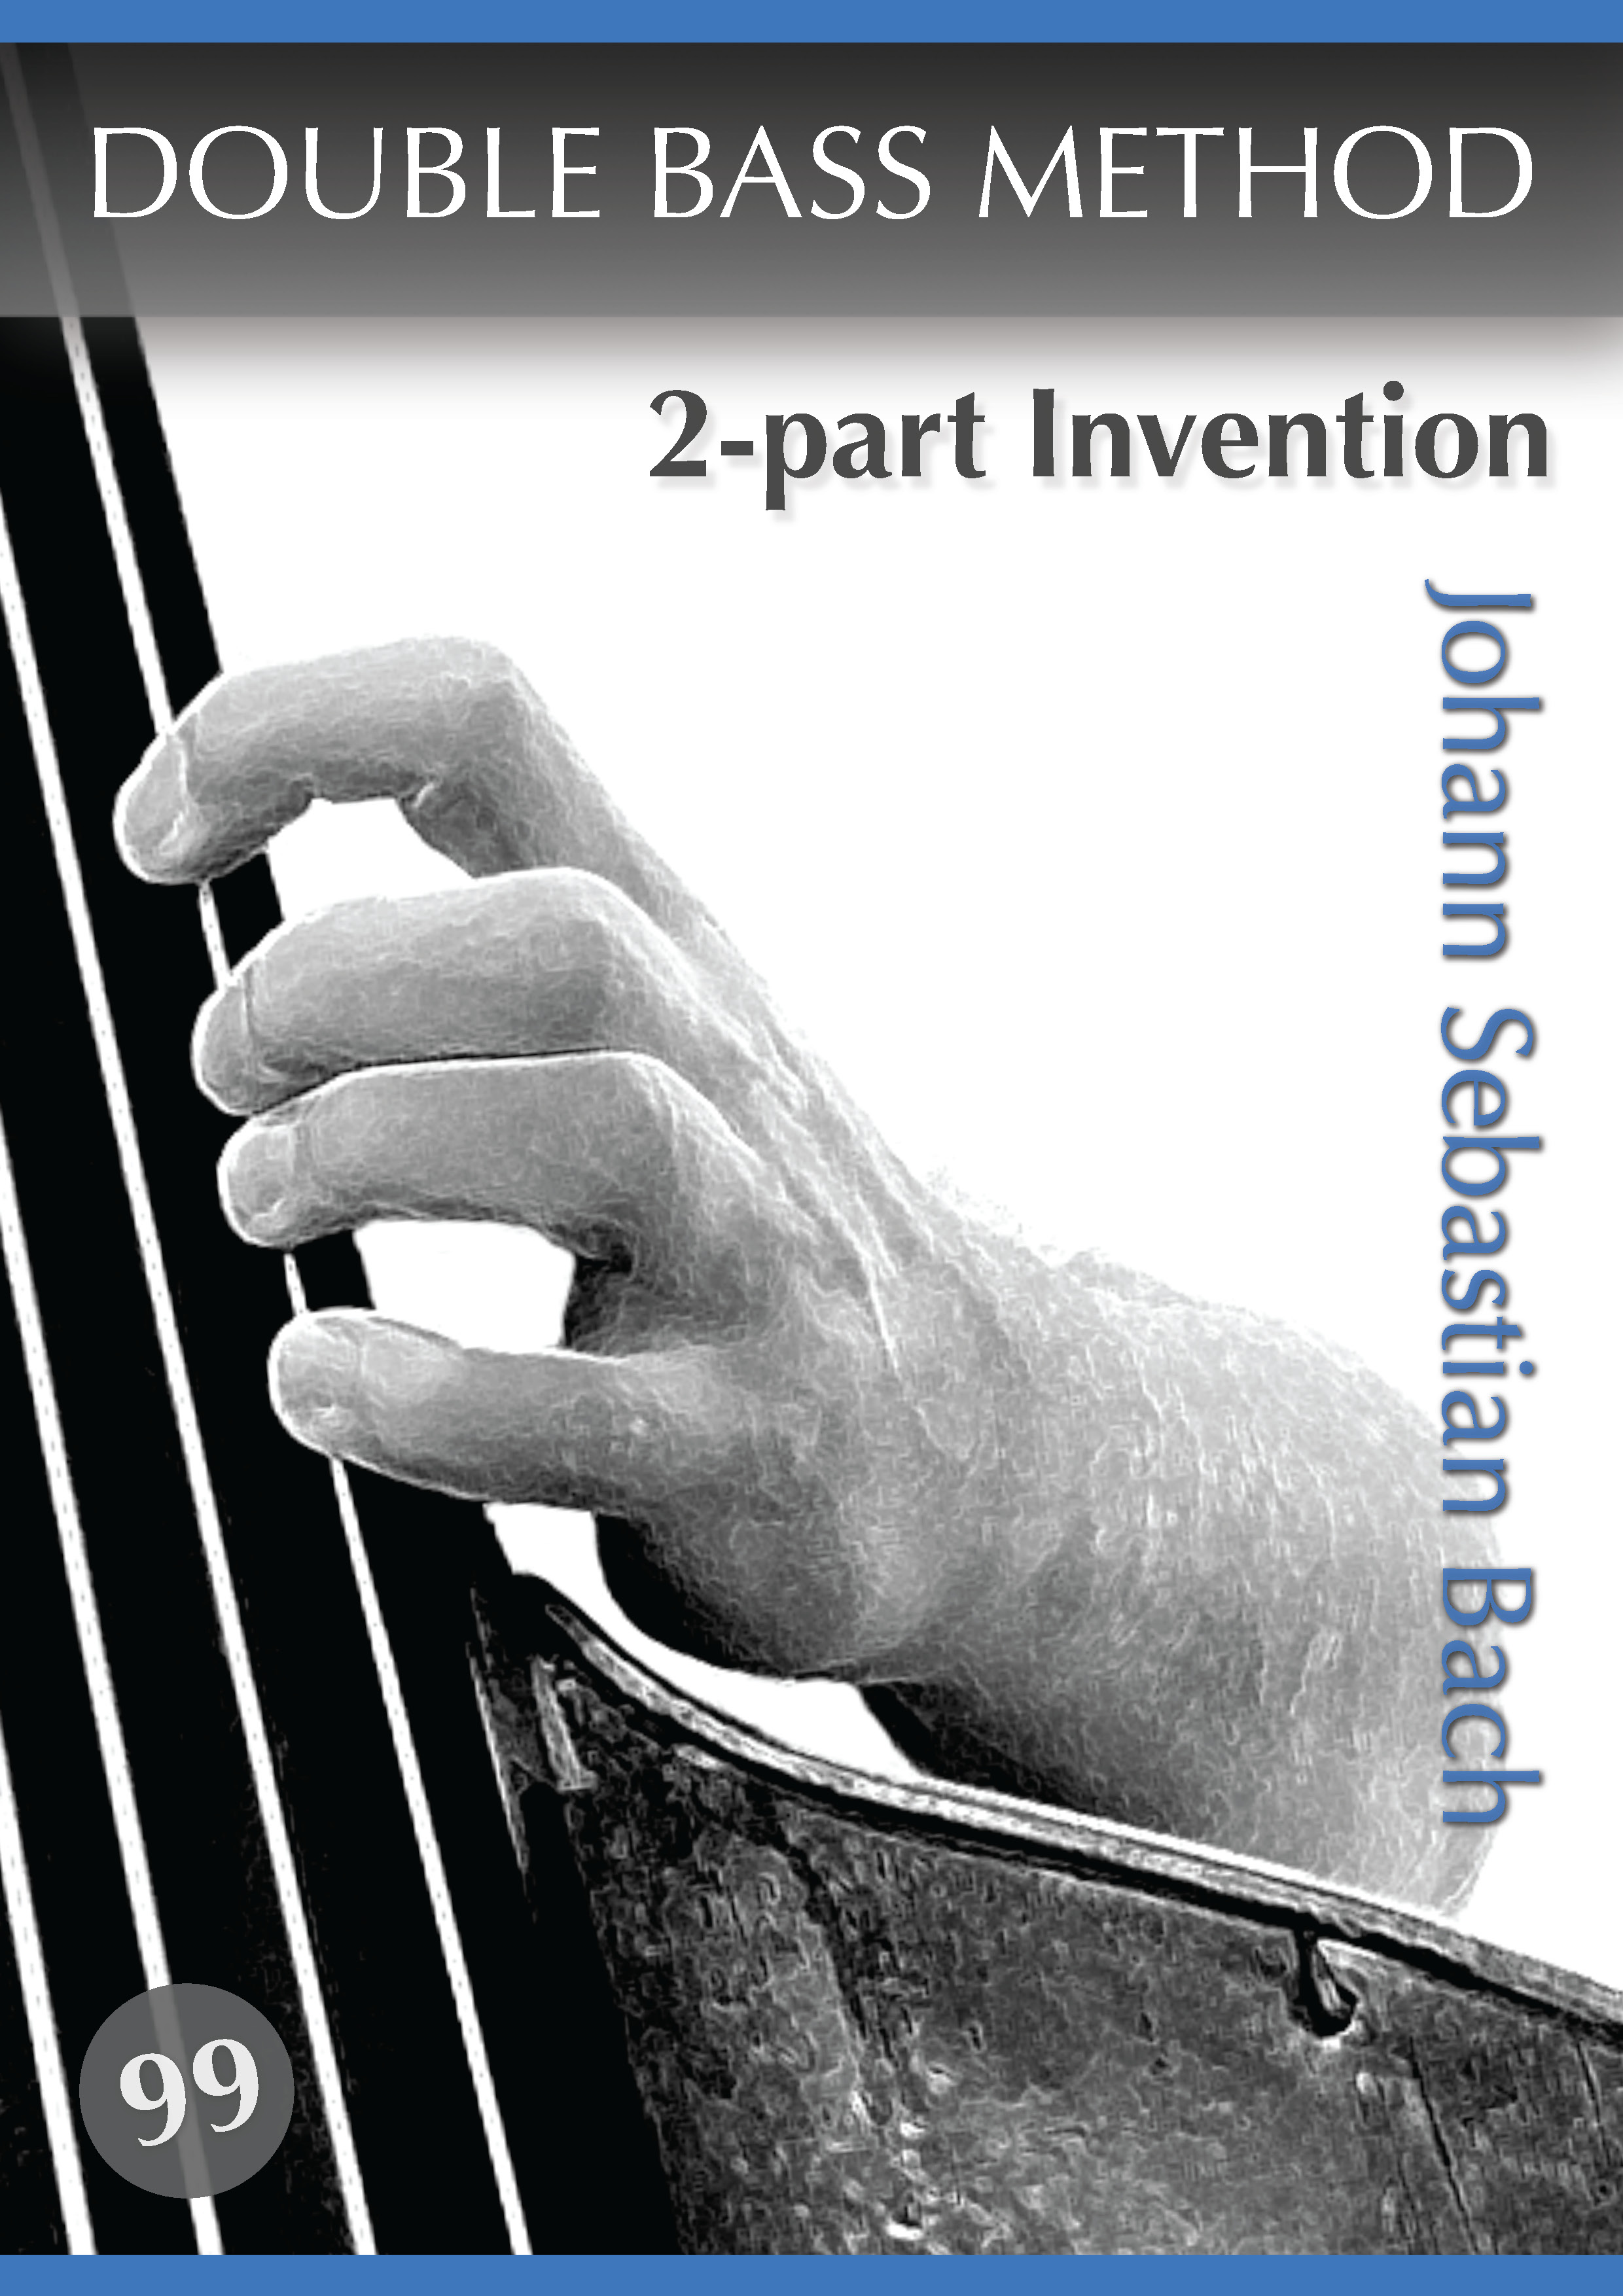 Bach Inventions - Hein Van de Geyn - Double Bass Method